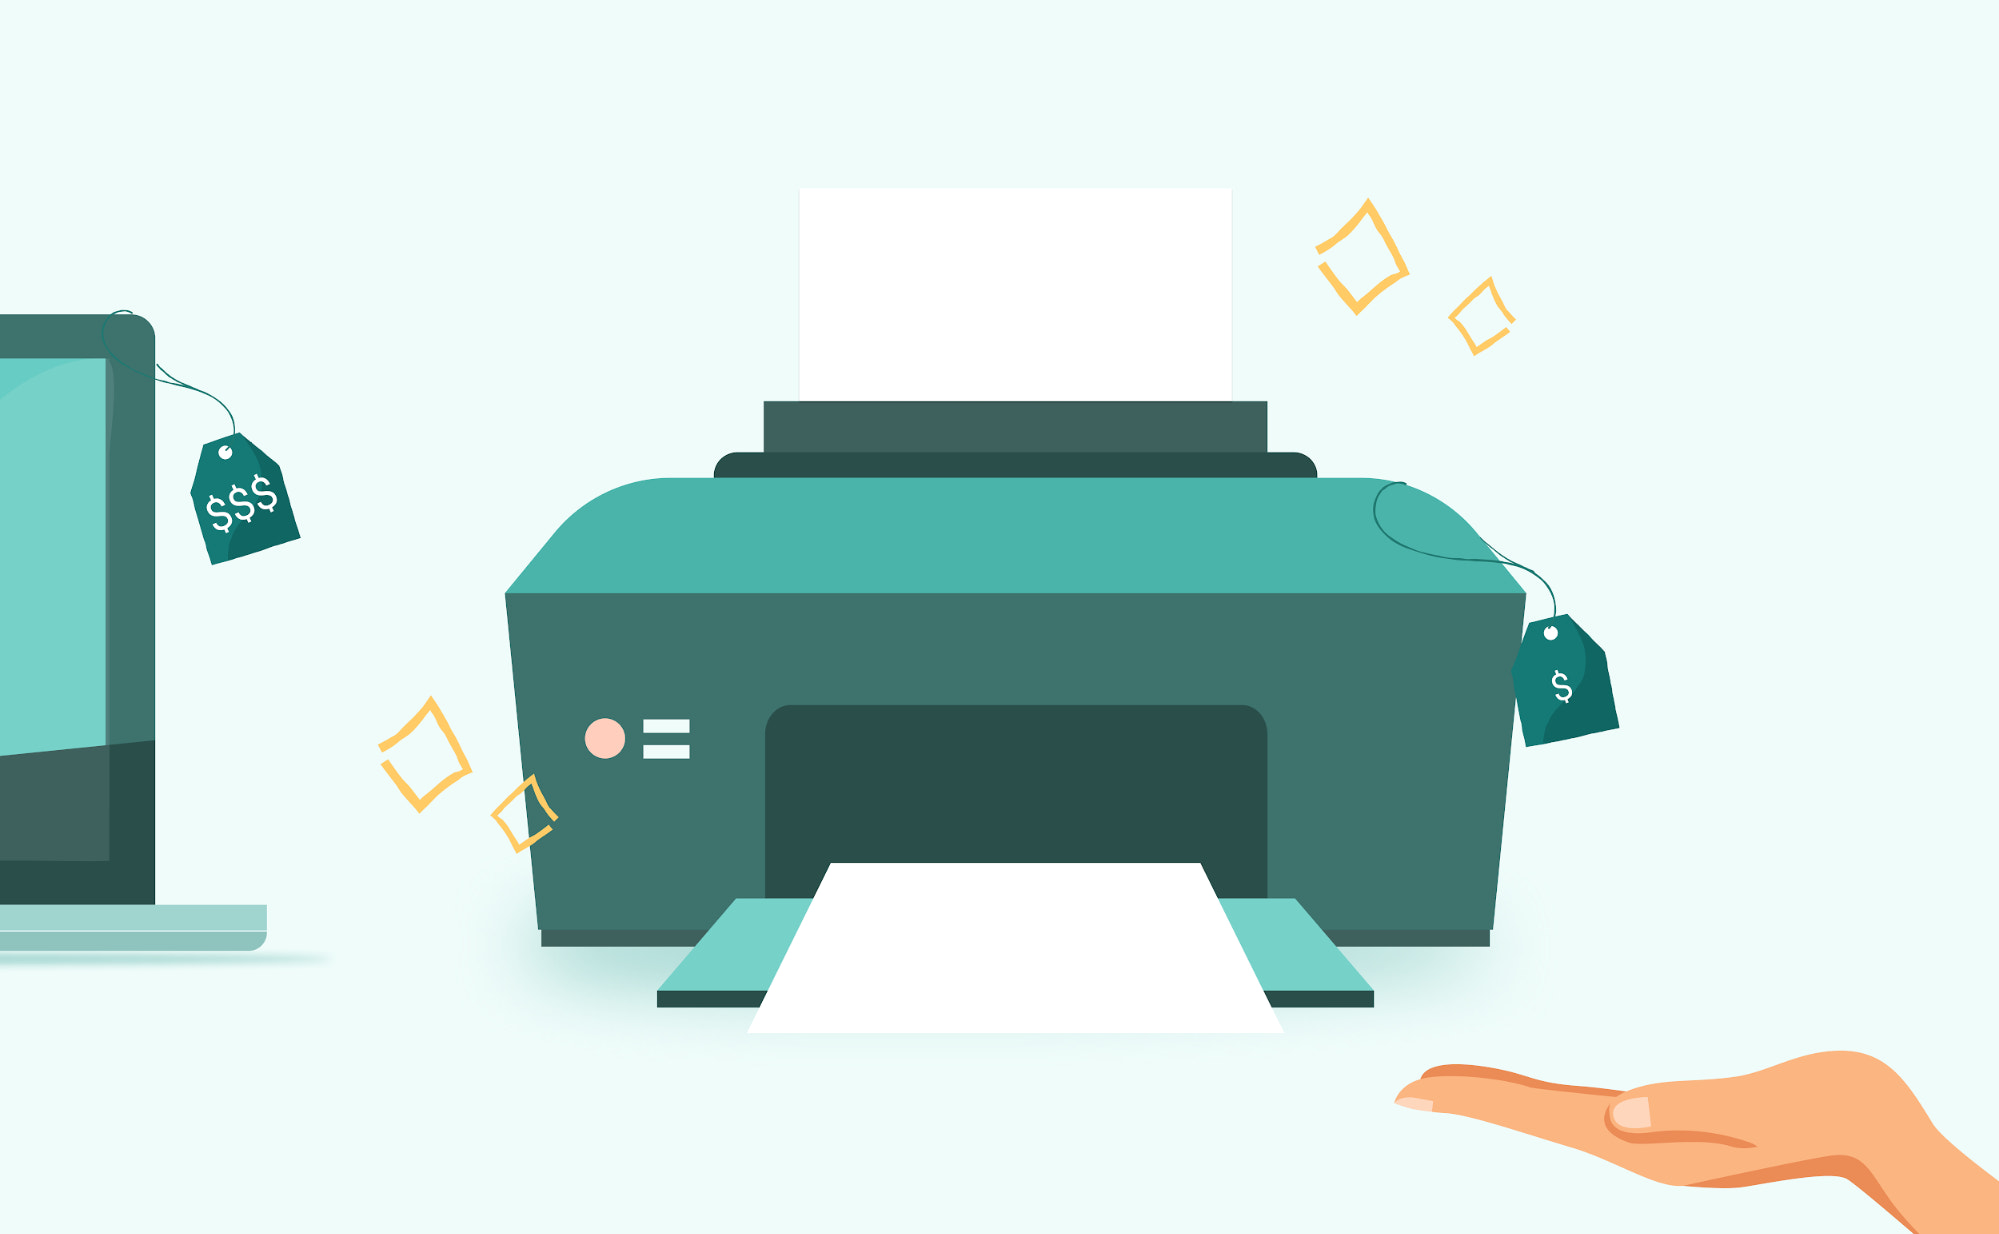 Selling a companion printer with a laptop is an example of cross-selling.